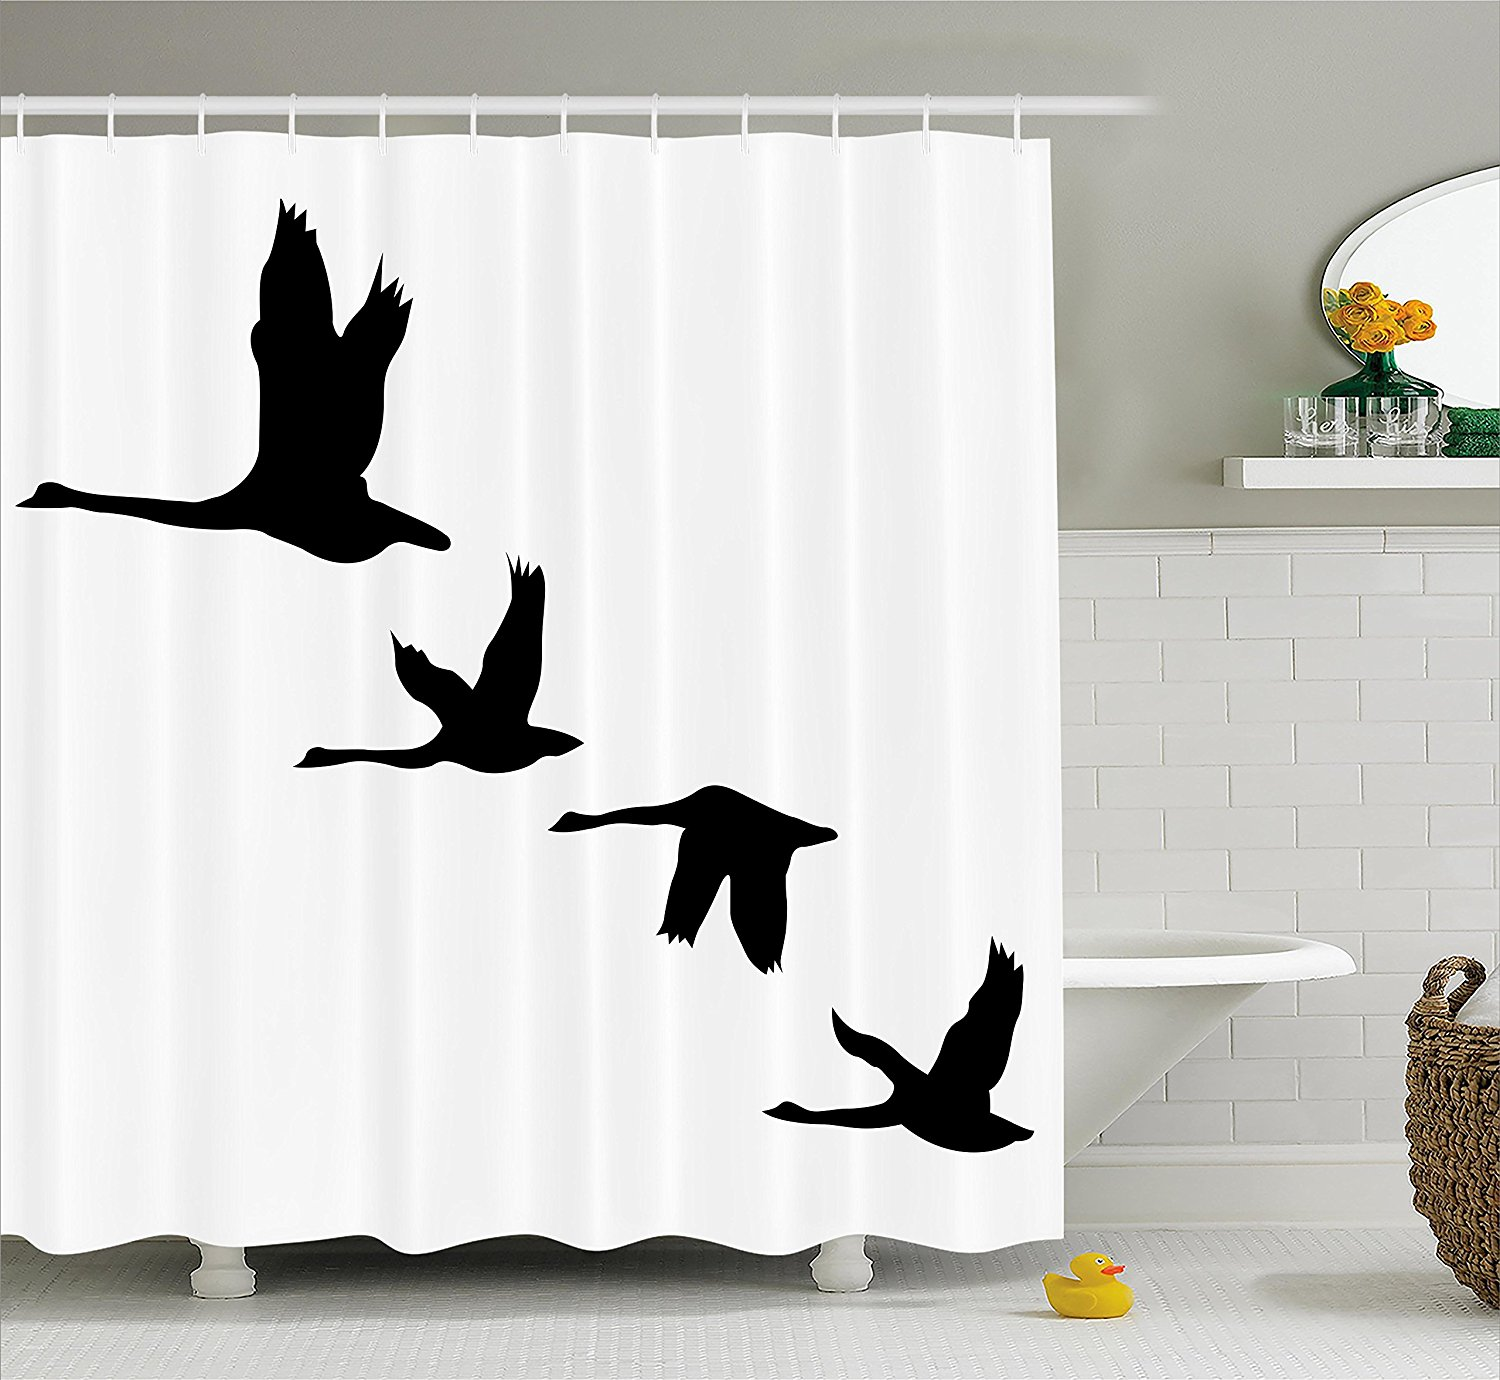 Bird Themed Bathroom Decor: Freedom Shower Curtain By , Silhouette Of Group Of Flying